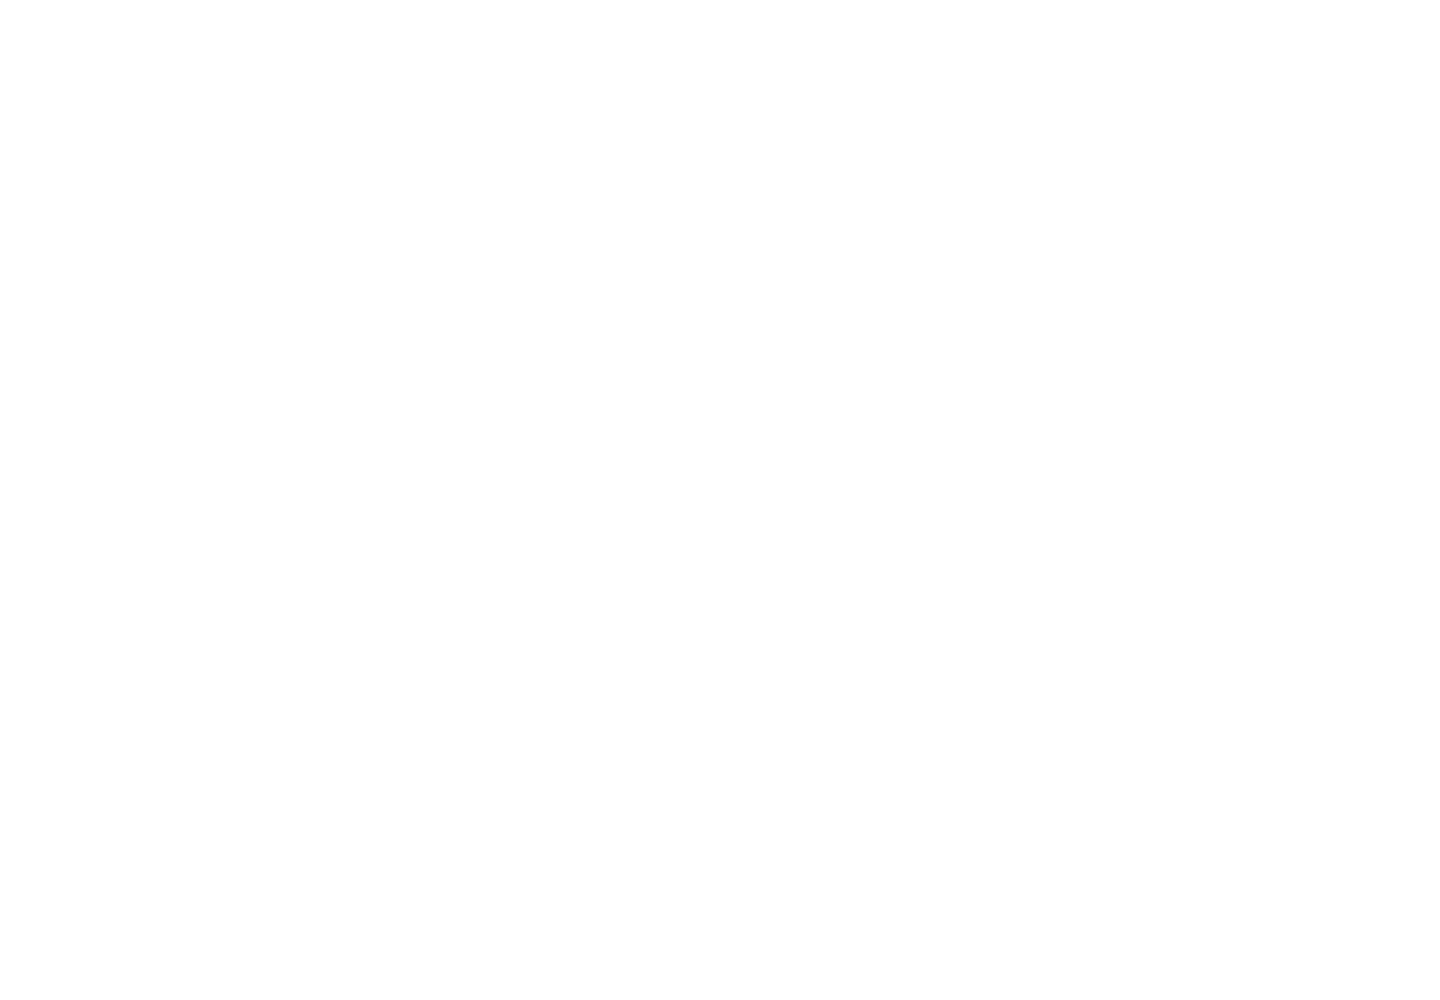 One shall obtain metal blood when wearing holy garments.